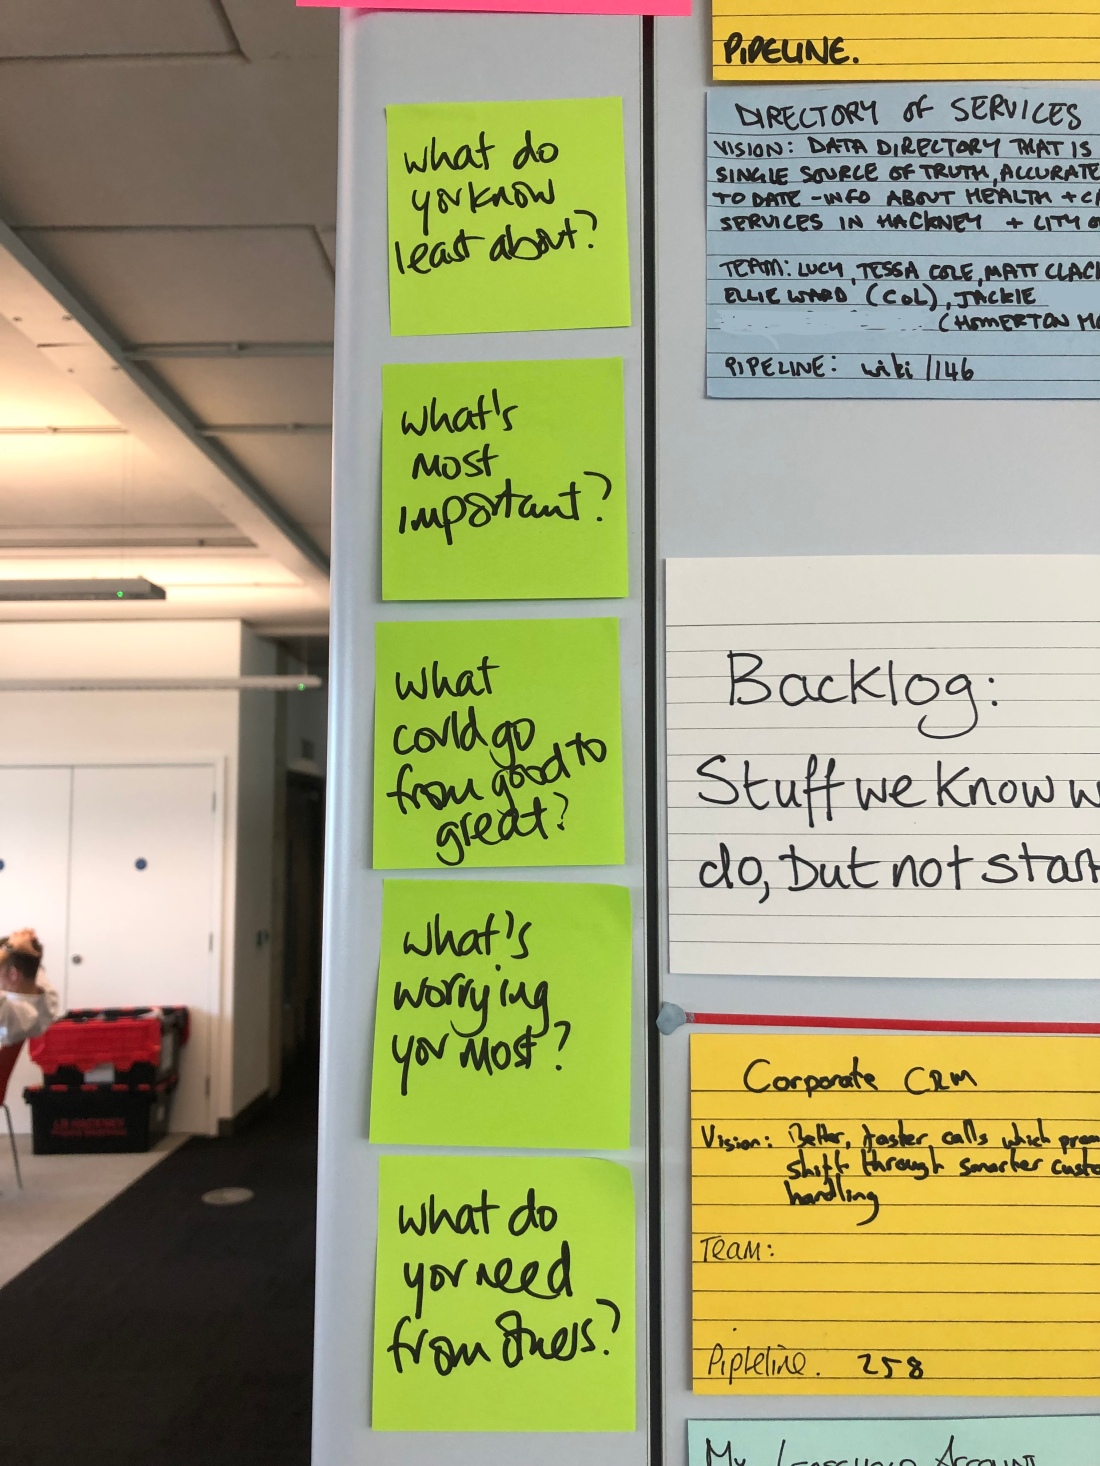 a picture of post it notes on a wall, listing the key questions. what do you need from others?, what's worrying you most? what could go from good to great? what's most important? and what do you know least about?